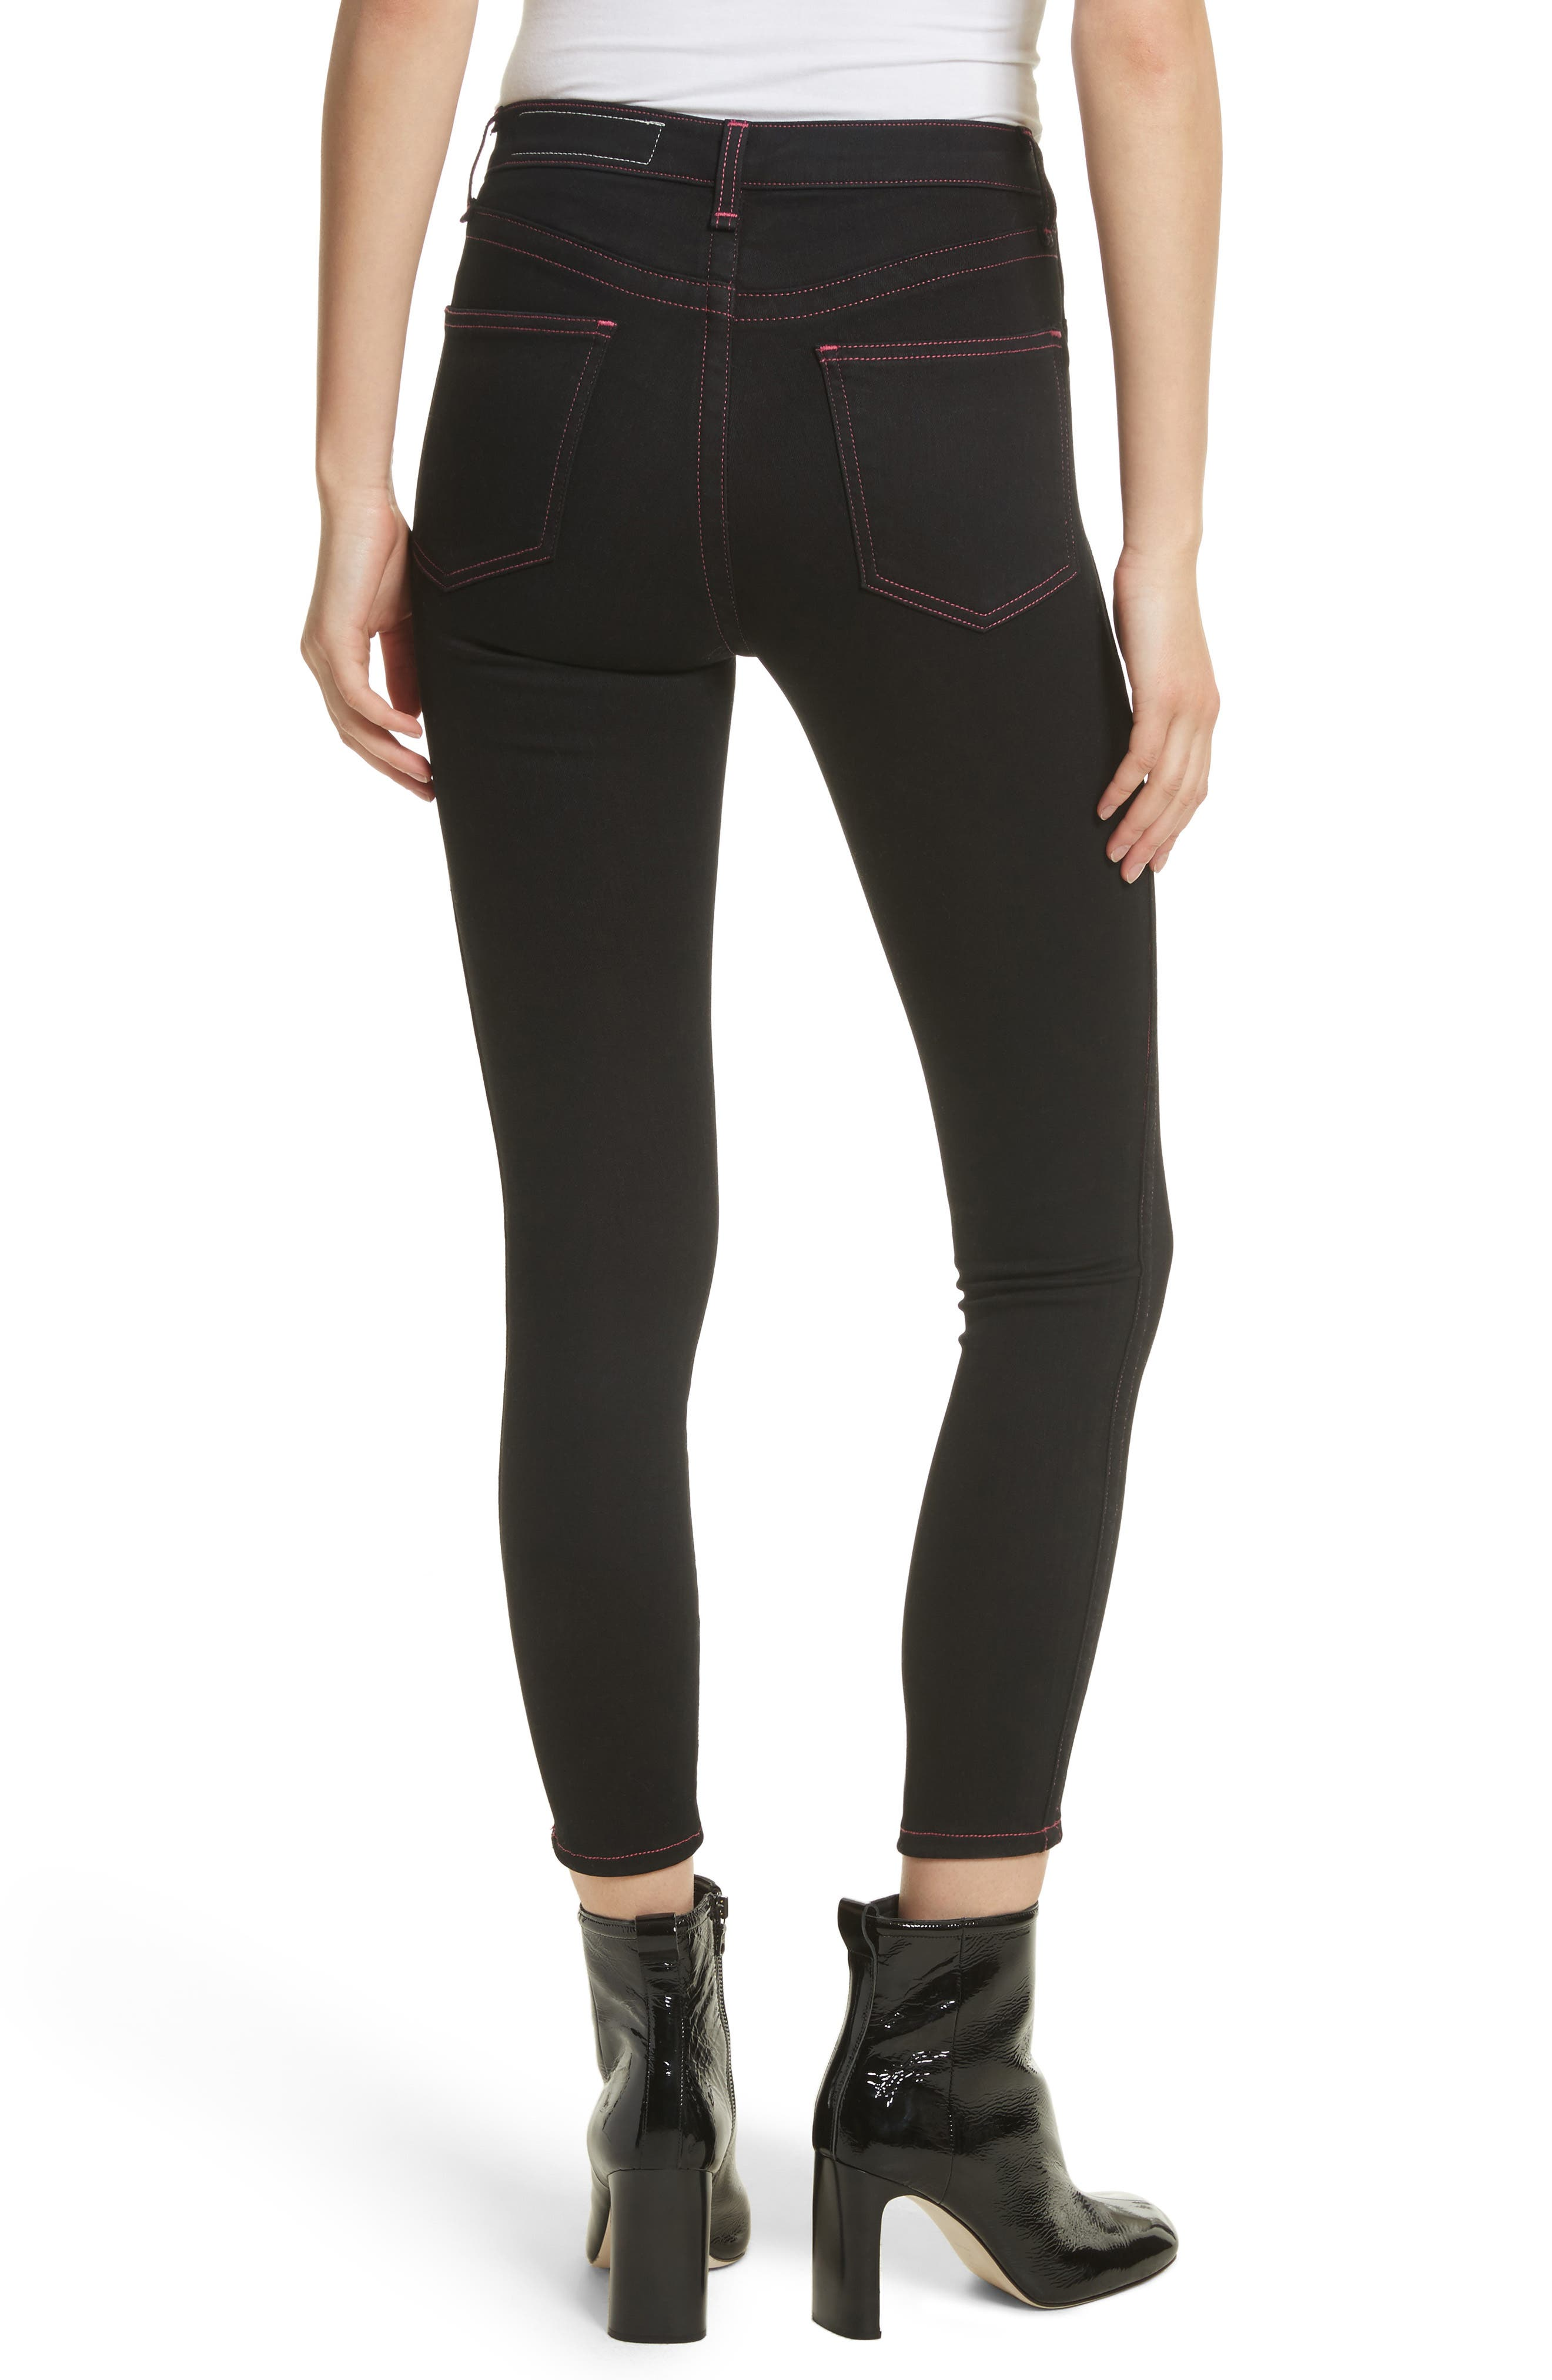 Miich High Rise Crop Skinny Jeans,                             Alternate thumbnail 2, color,                             Black Stitch